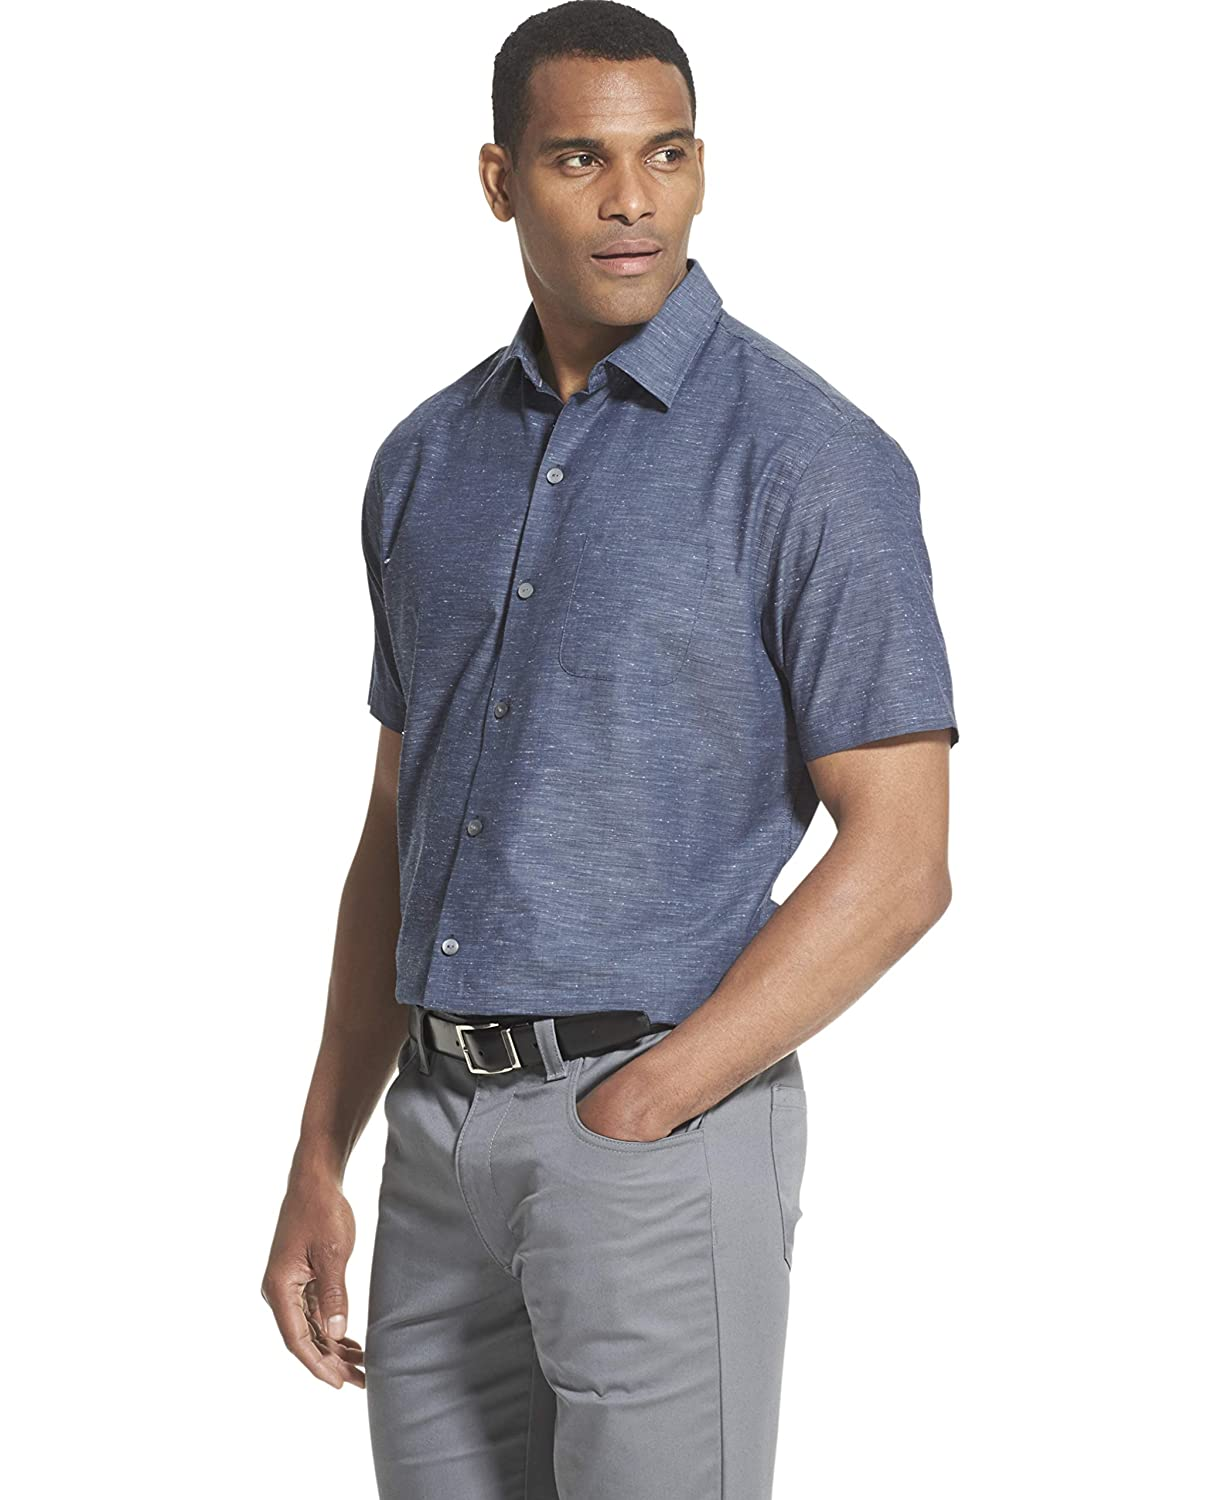 Van Heusen Mens Air Short Sleeve Button Down Solid Shirt